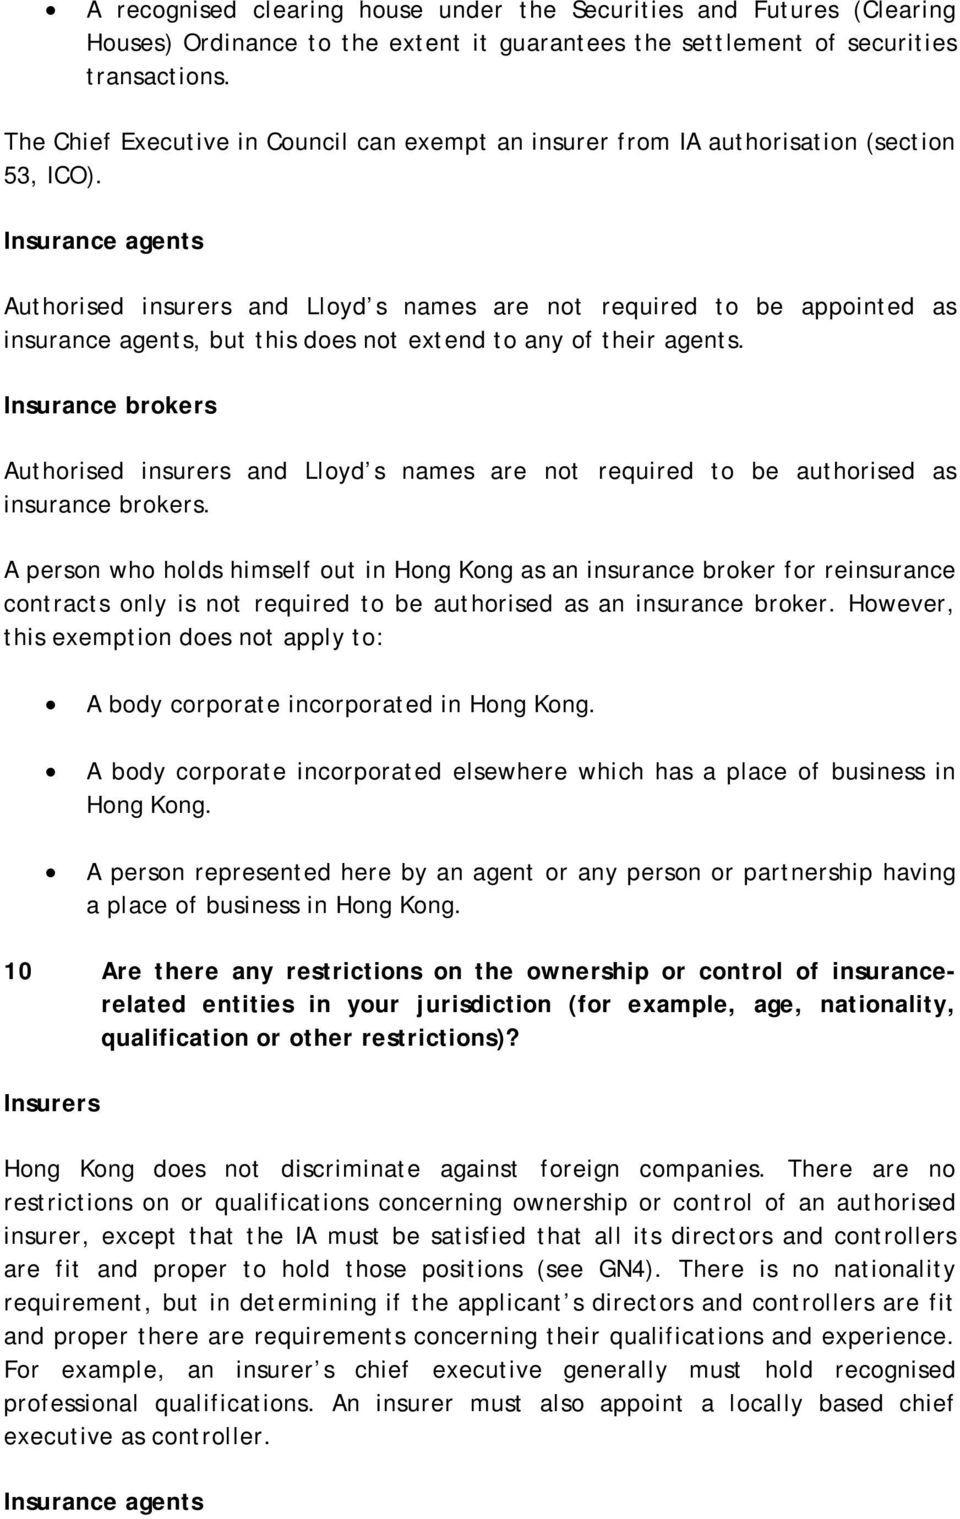 Insurance agents Authrised insurers and Llyd s names are nt required t be appinted as insurance agents, but this des nt extend t any f their agents.